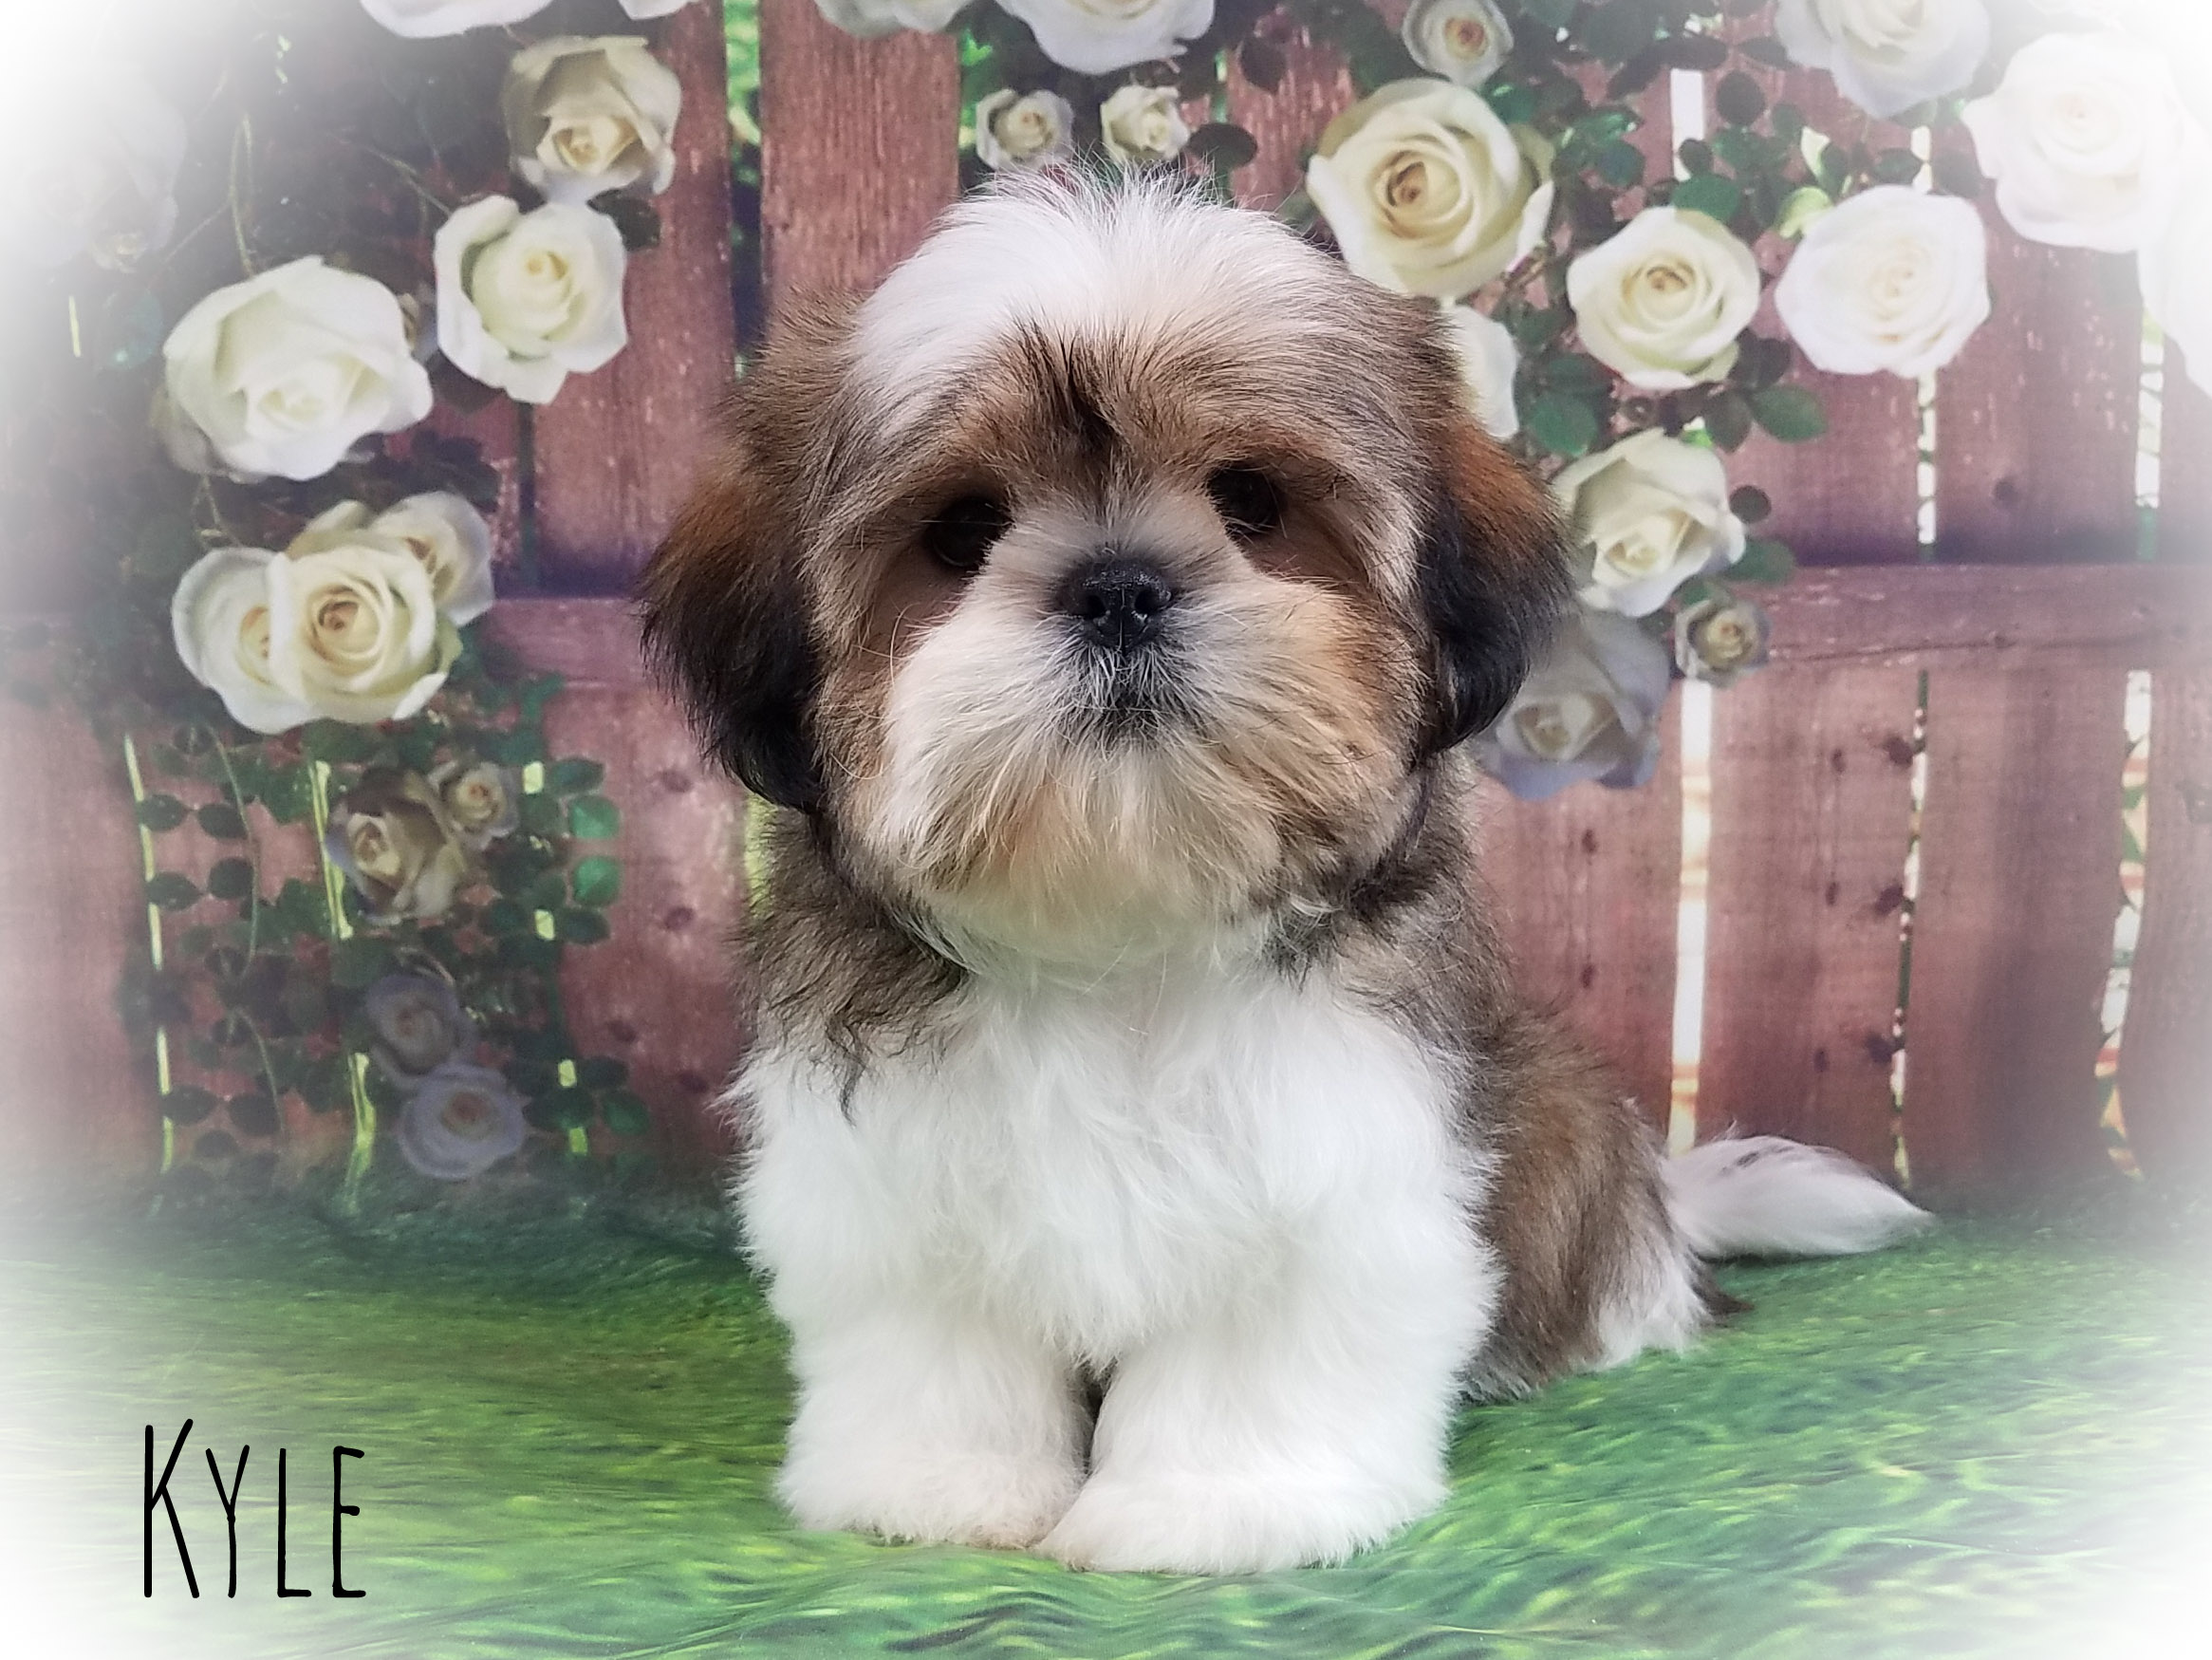 Shih Tzu Male Puppy - Kyle